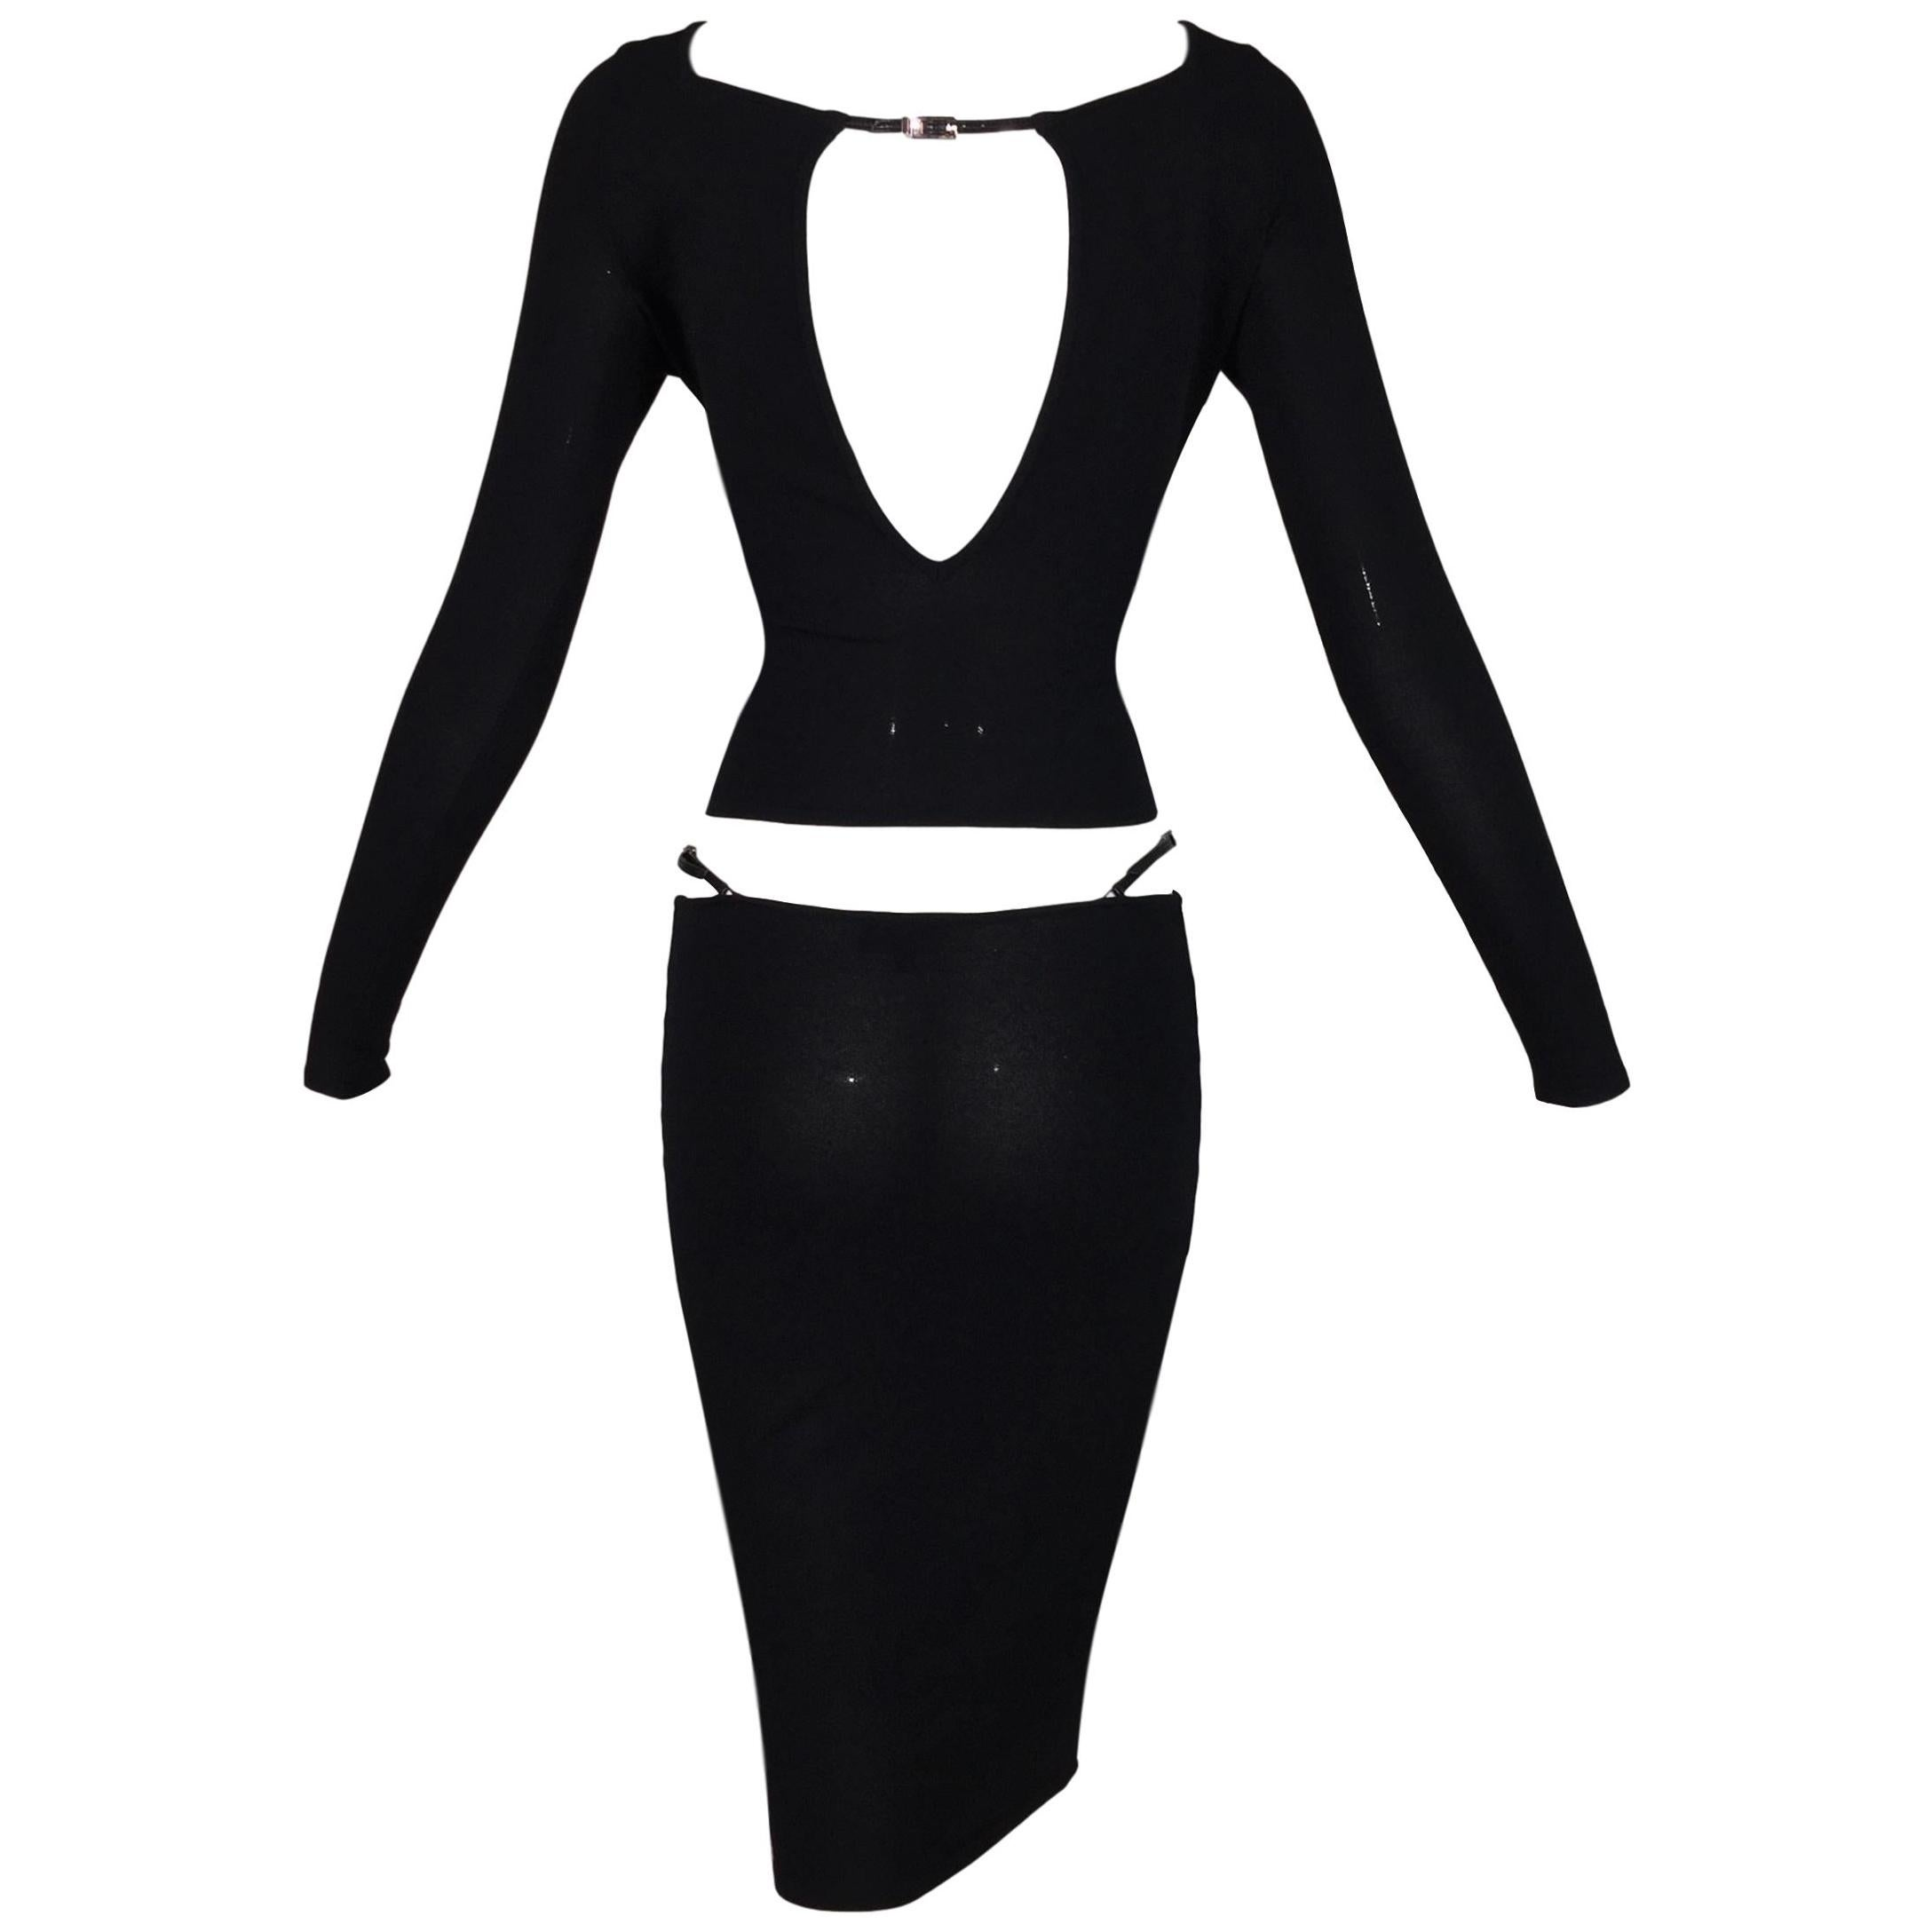 S/S 1998 Gucci Tom Ford Runway Black Knit Strappy Top & Skirt Set